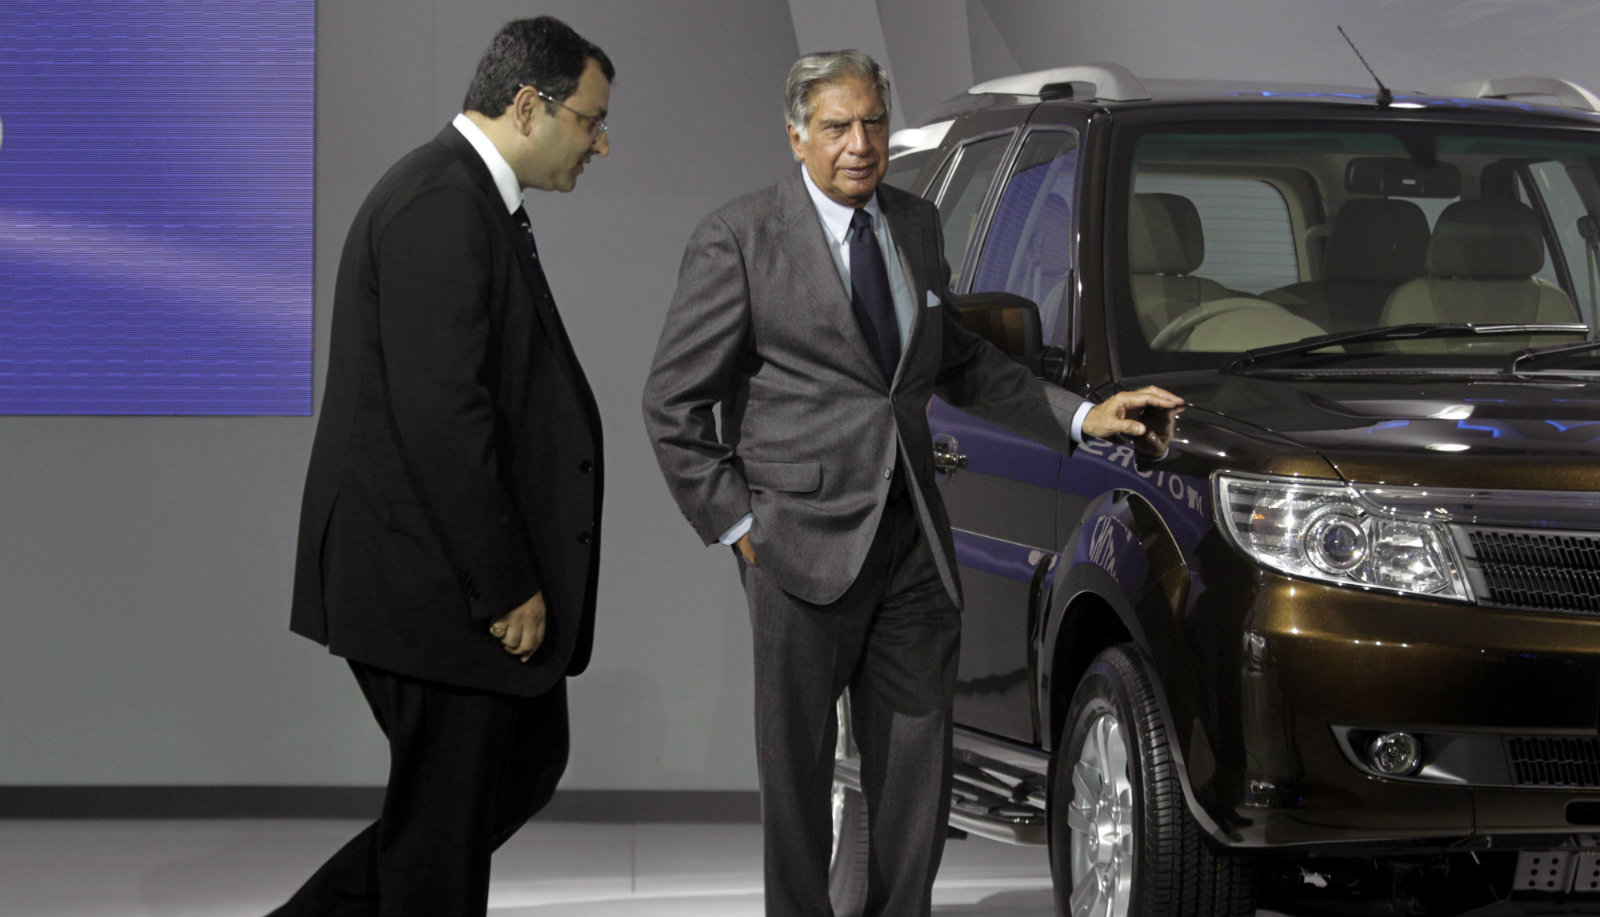 Tata Sons Chairman Ratan Tata, center, and deputy chairman Cyrus Mistry, left, pose near a Tata Safari during a press preview at the India Auto Expo, in New Delhi, India, Thursday, Jan. 5, 2012. The five day long automobile event begins Saturday.